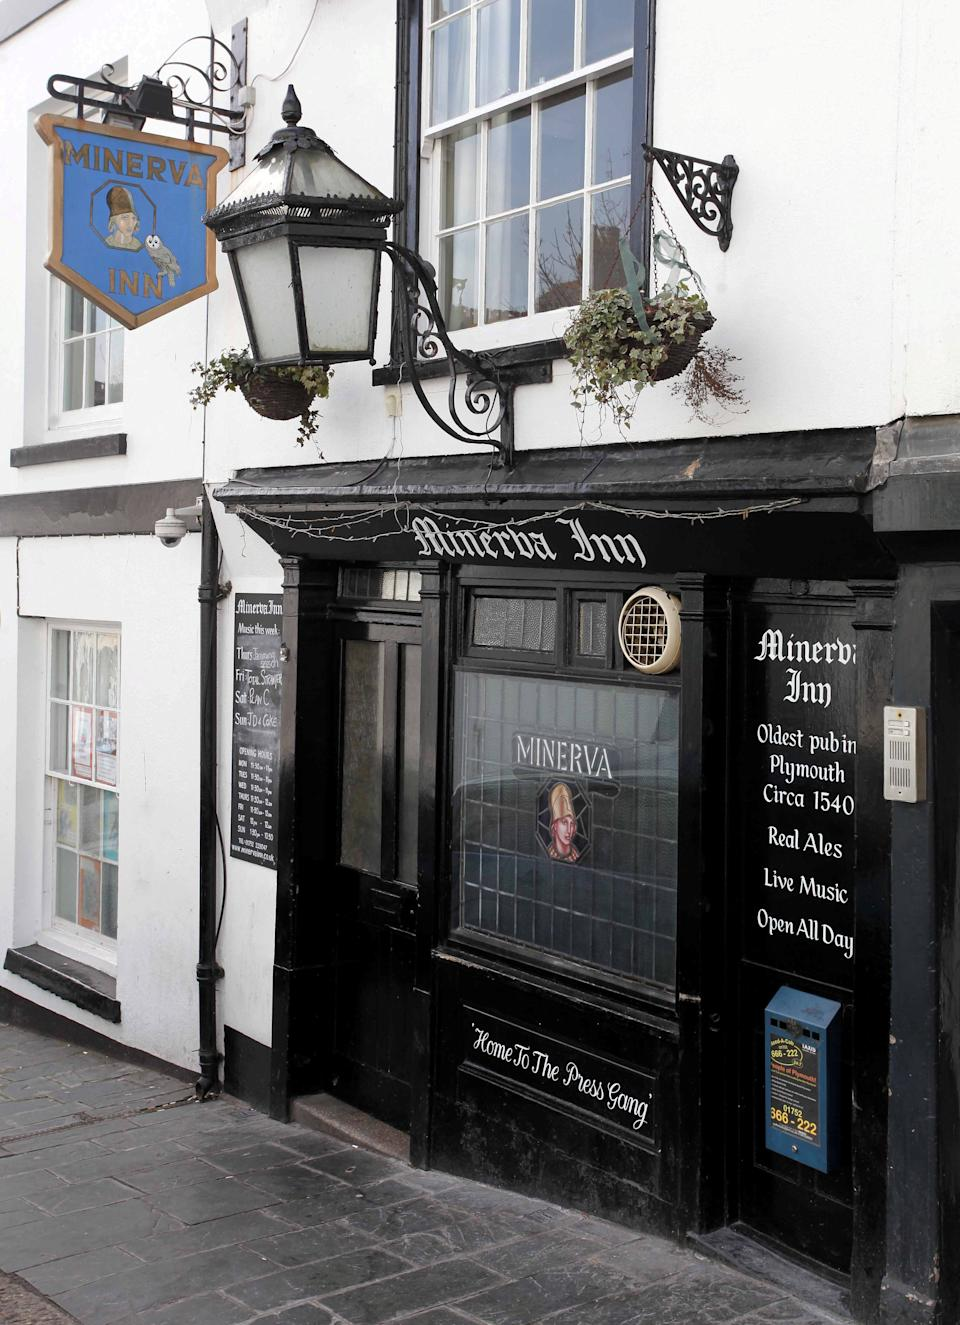 The historic Minerva Inn in Plymouth (file photo) See SWNS story SWPLdaughter. A pub landlady has admitted to turning away her own daughter after introducing a ban on unvaccinated customers. Shelly Jones, who owns the Minerva Inn, in Plymouth, made the controversial decision to keep out any punter who cannot show proof of their Covid-19 vaccination status. The publican said the strict policy was to protect her older and more vulnerable clientele, who have proven loyal throughout the pandemic.